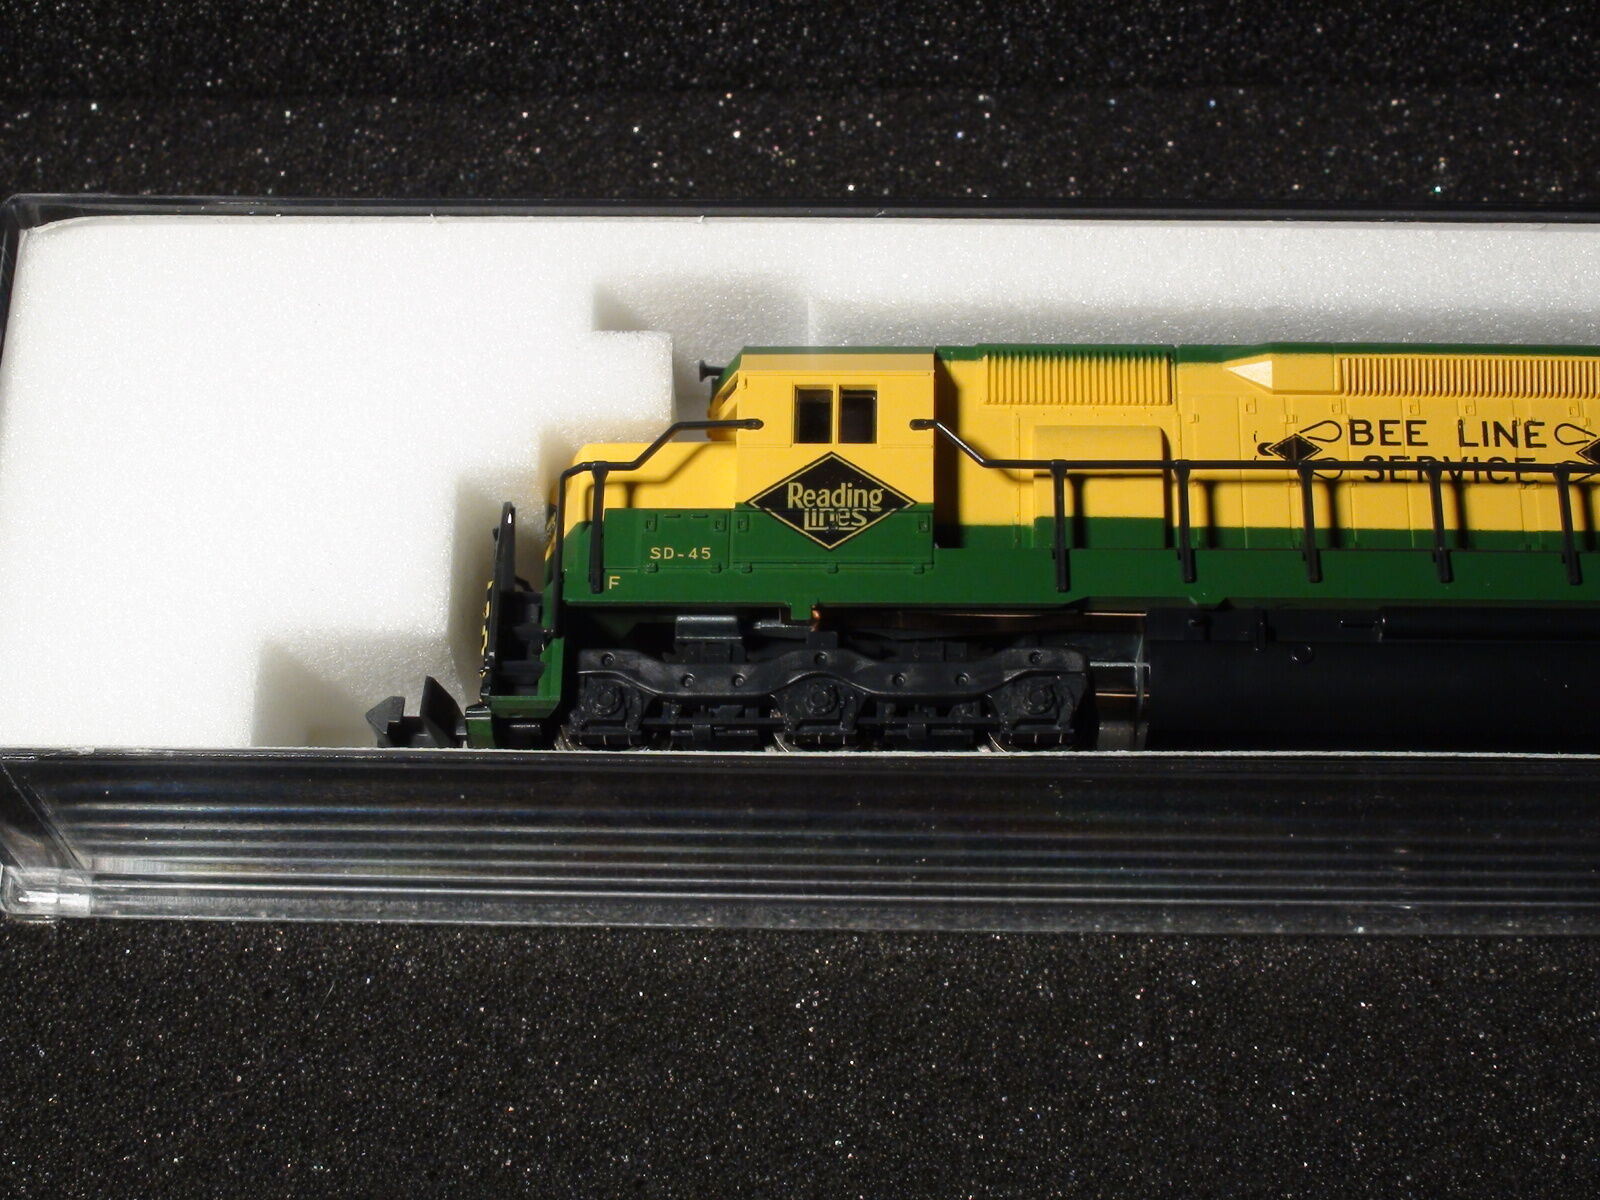 N-SCALE KATO  176-3115 EMD SD45 READING ROAD  7602